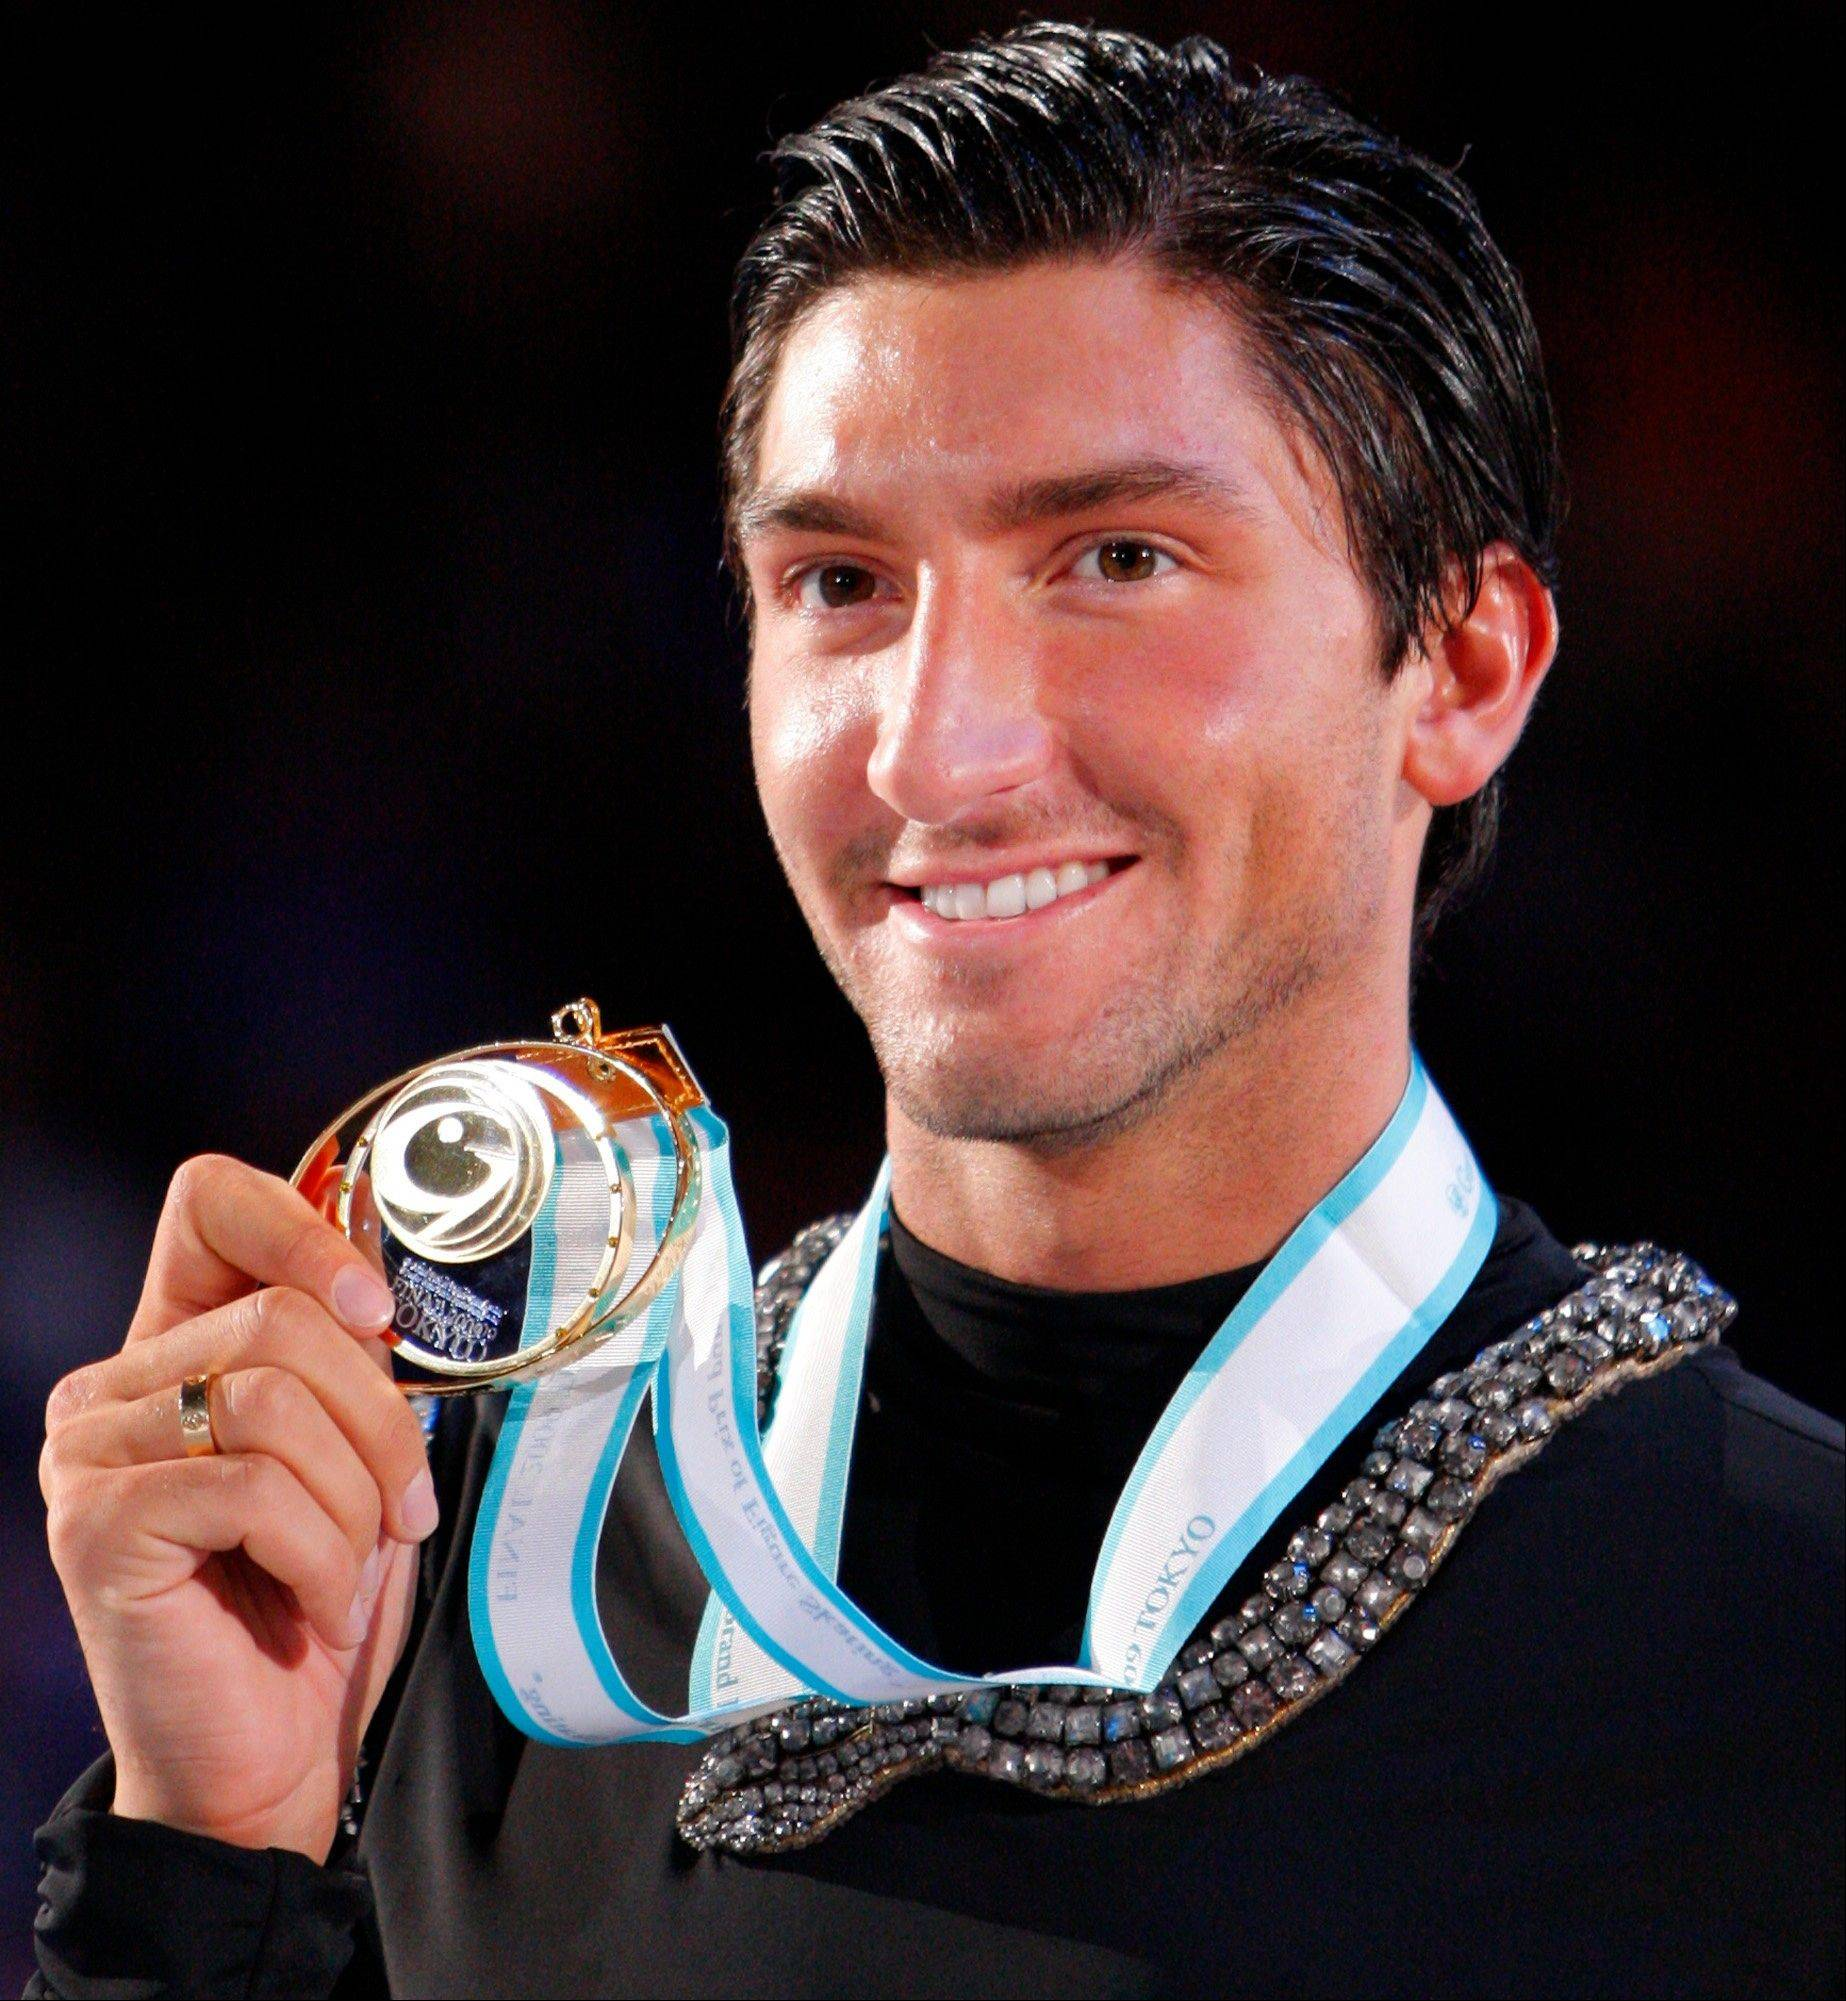 Gold medalist Evan Lysacek made his return official Friday and announced that he is entered for Skate America in October � his first competition since winning the gold medal in Vancouver in 2010.